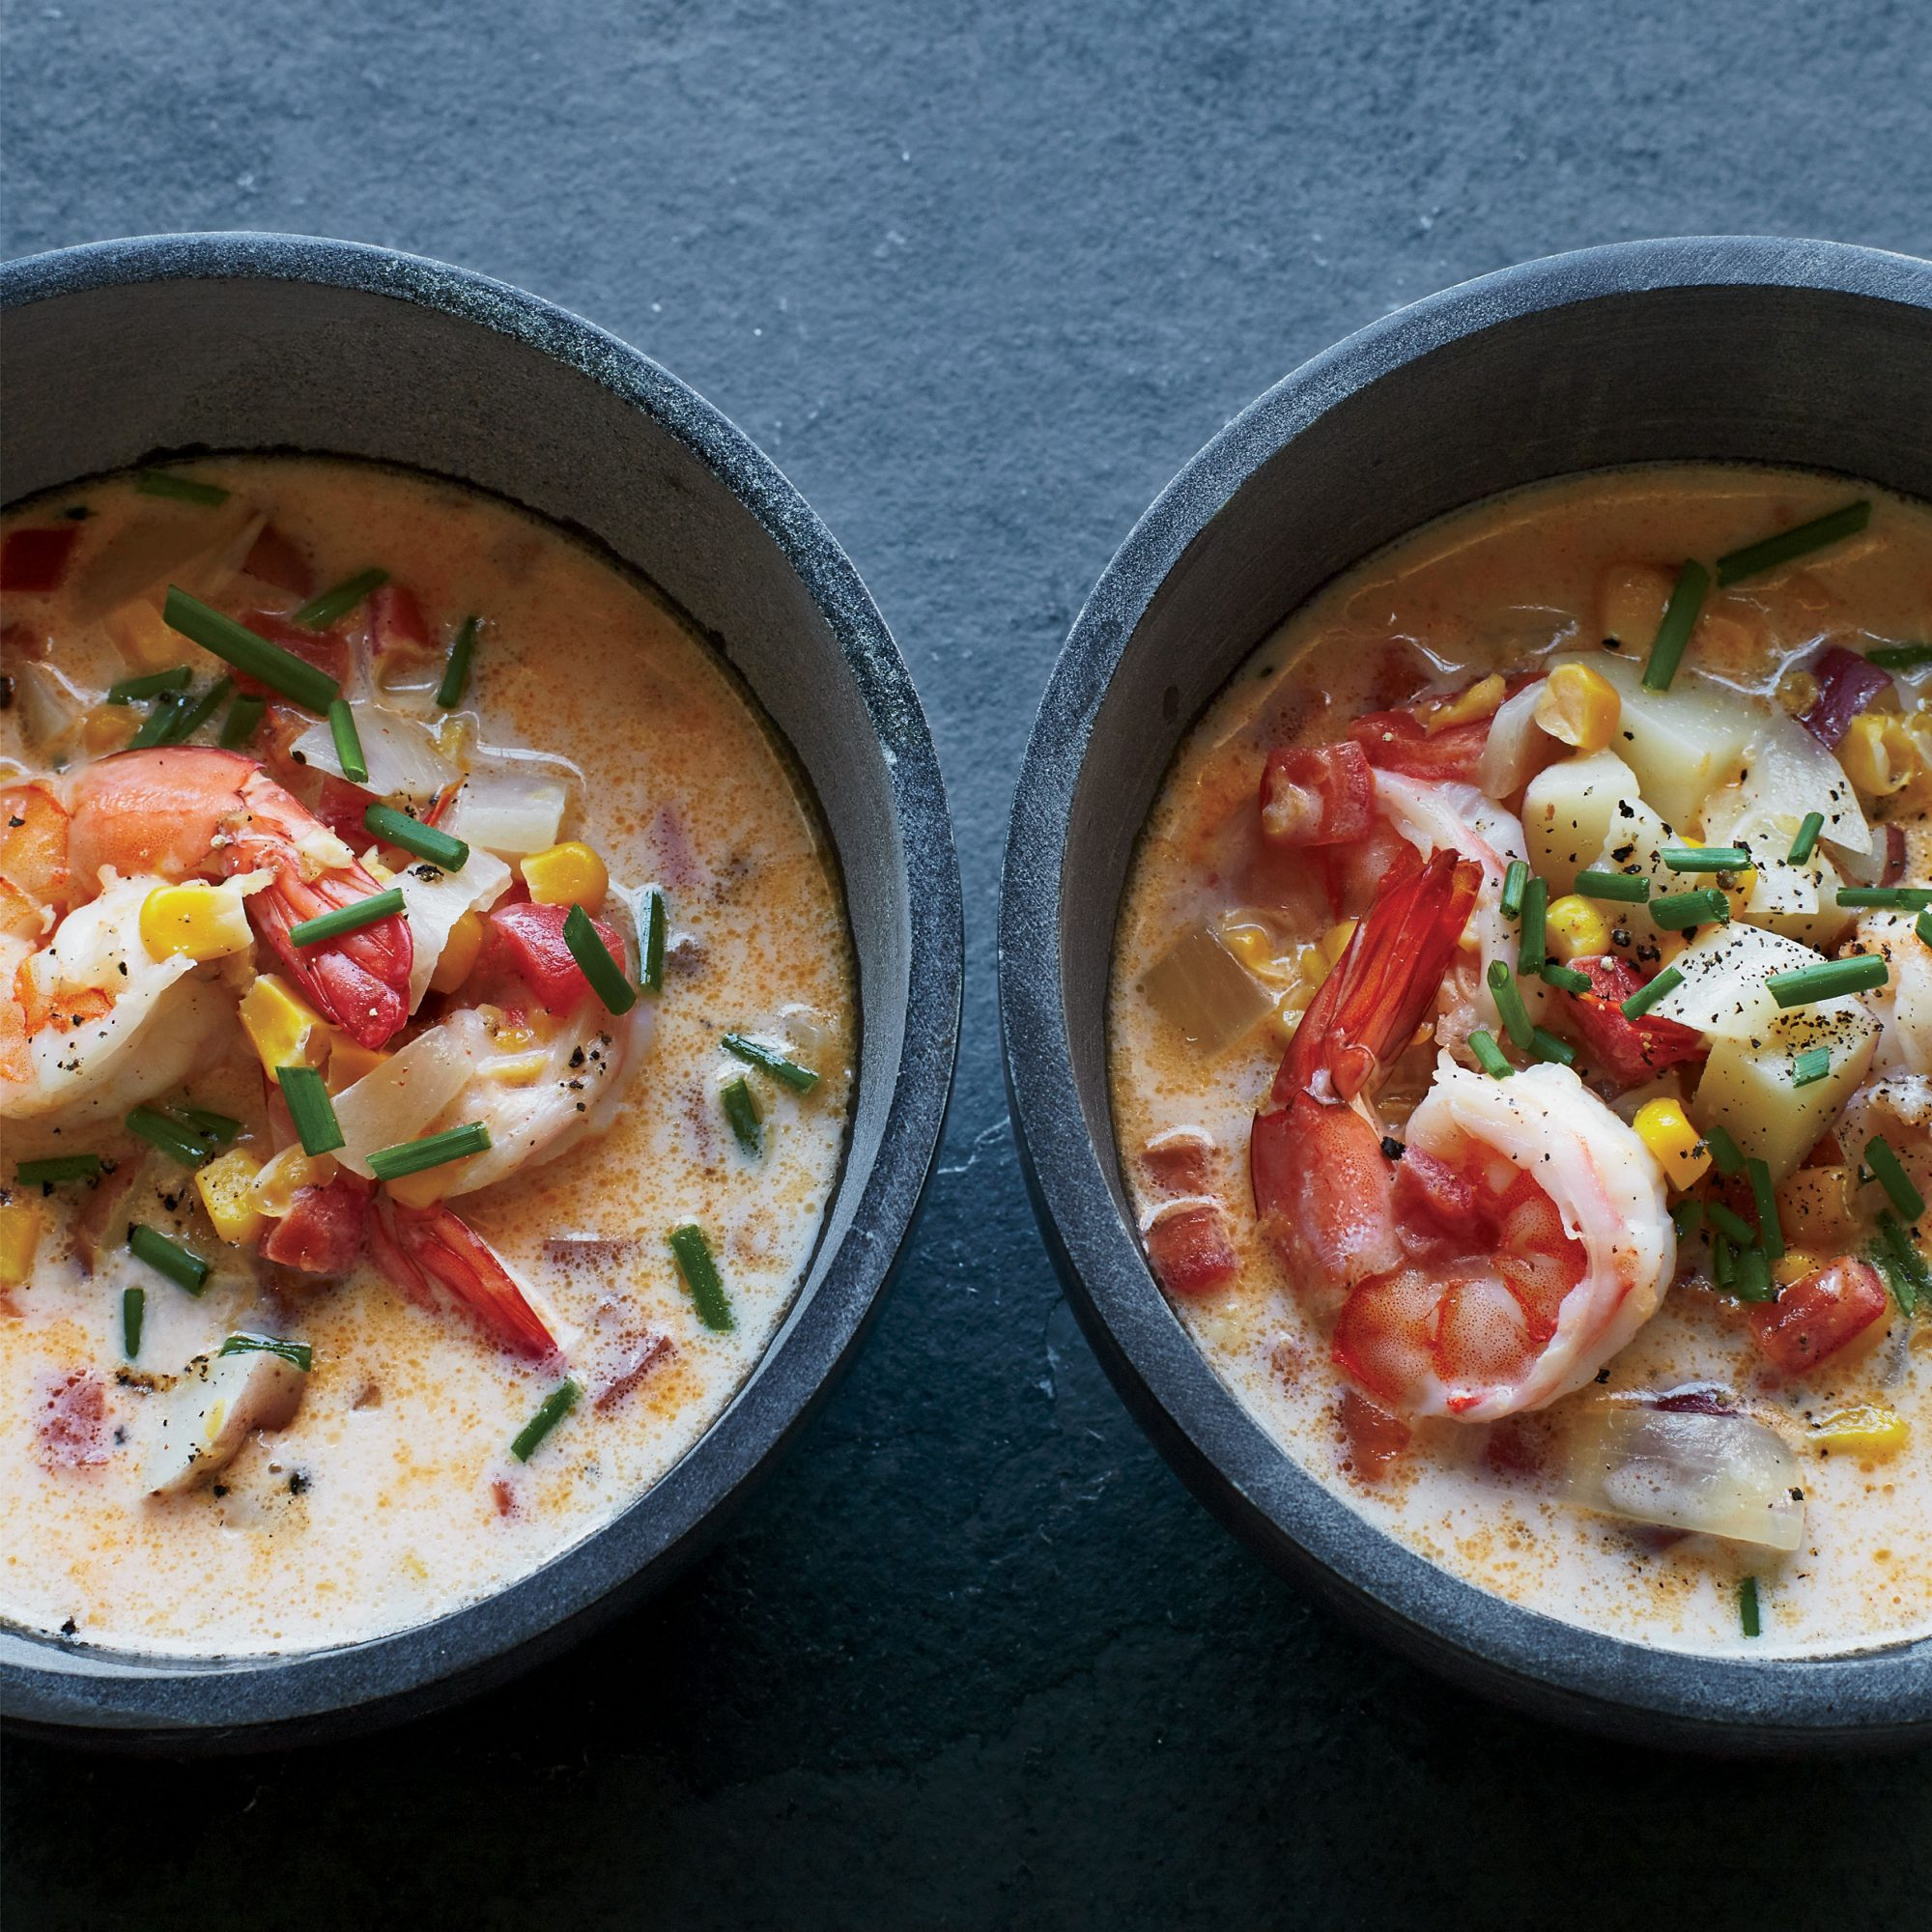 Creamy Shrimp Corn and Tomato Chowder